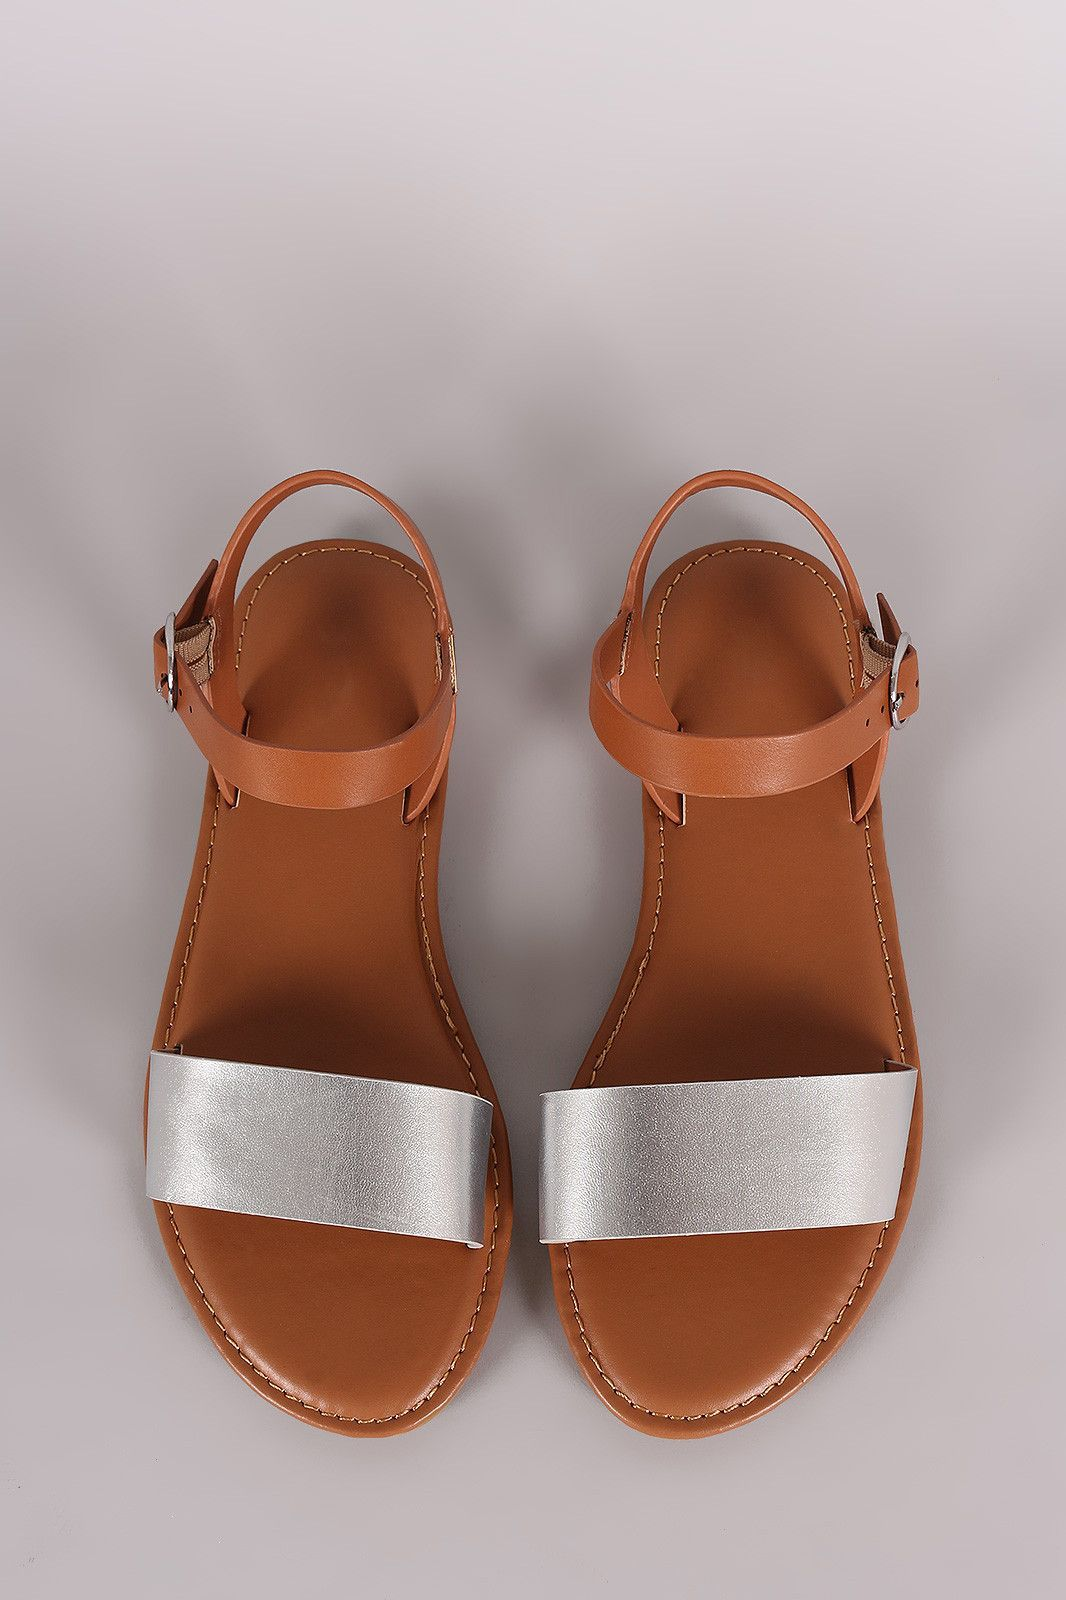 86c506efe Bamboo Two Tone Ankle Strap Flat Sandal